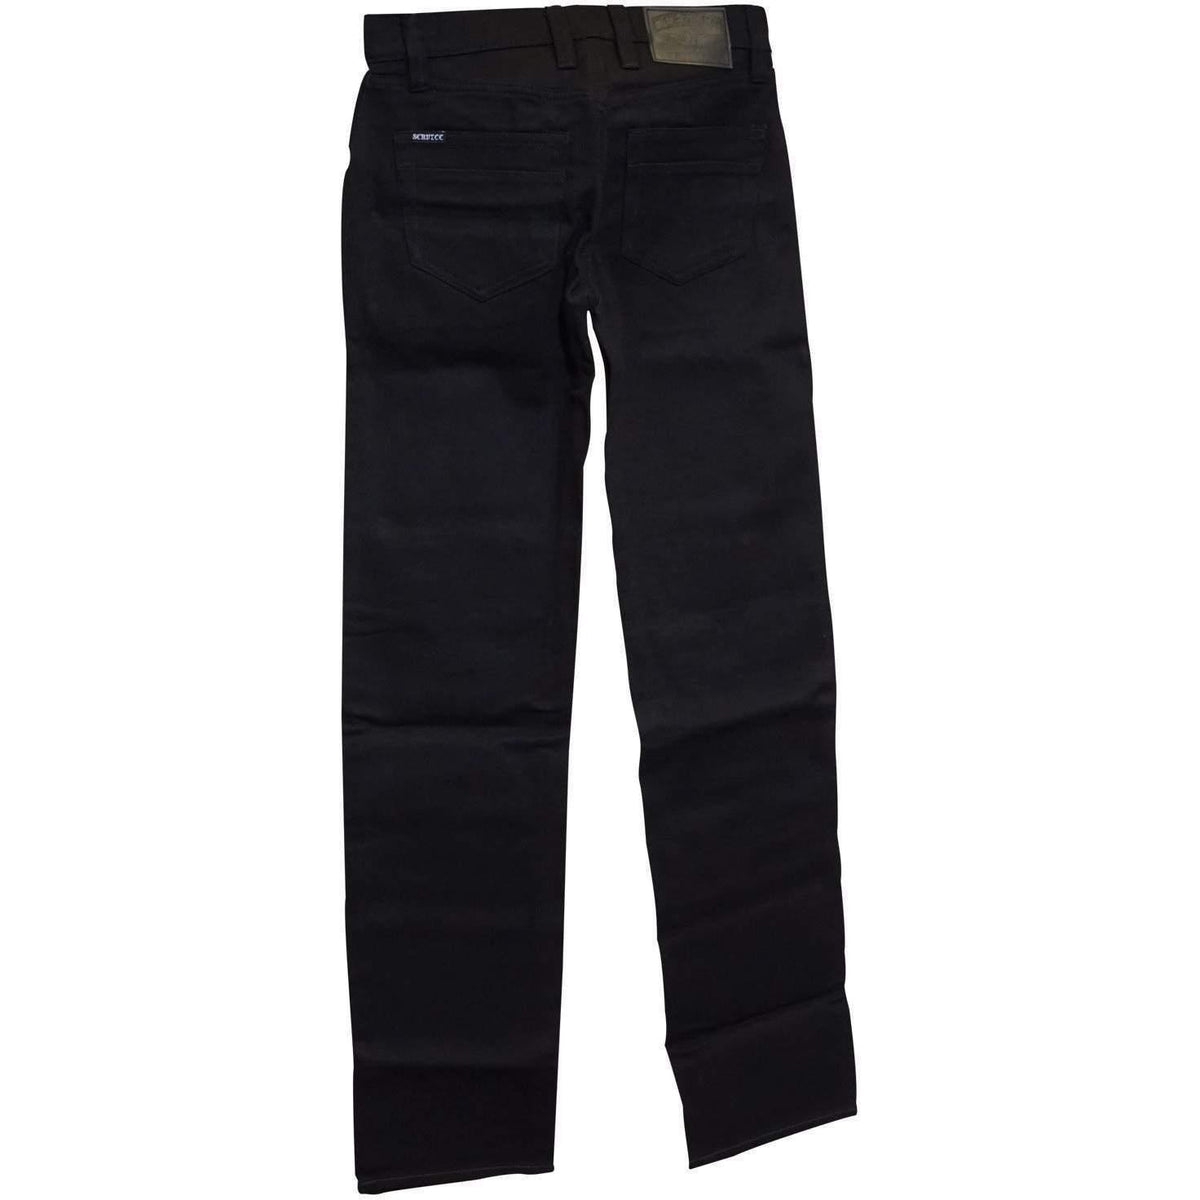 LIP SERVICE MENS GREASER FIT RIGID BULL DENIM JEANS